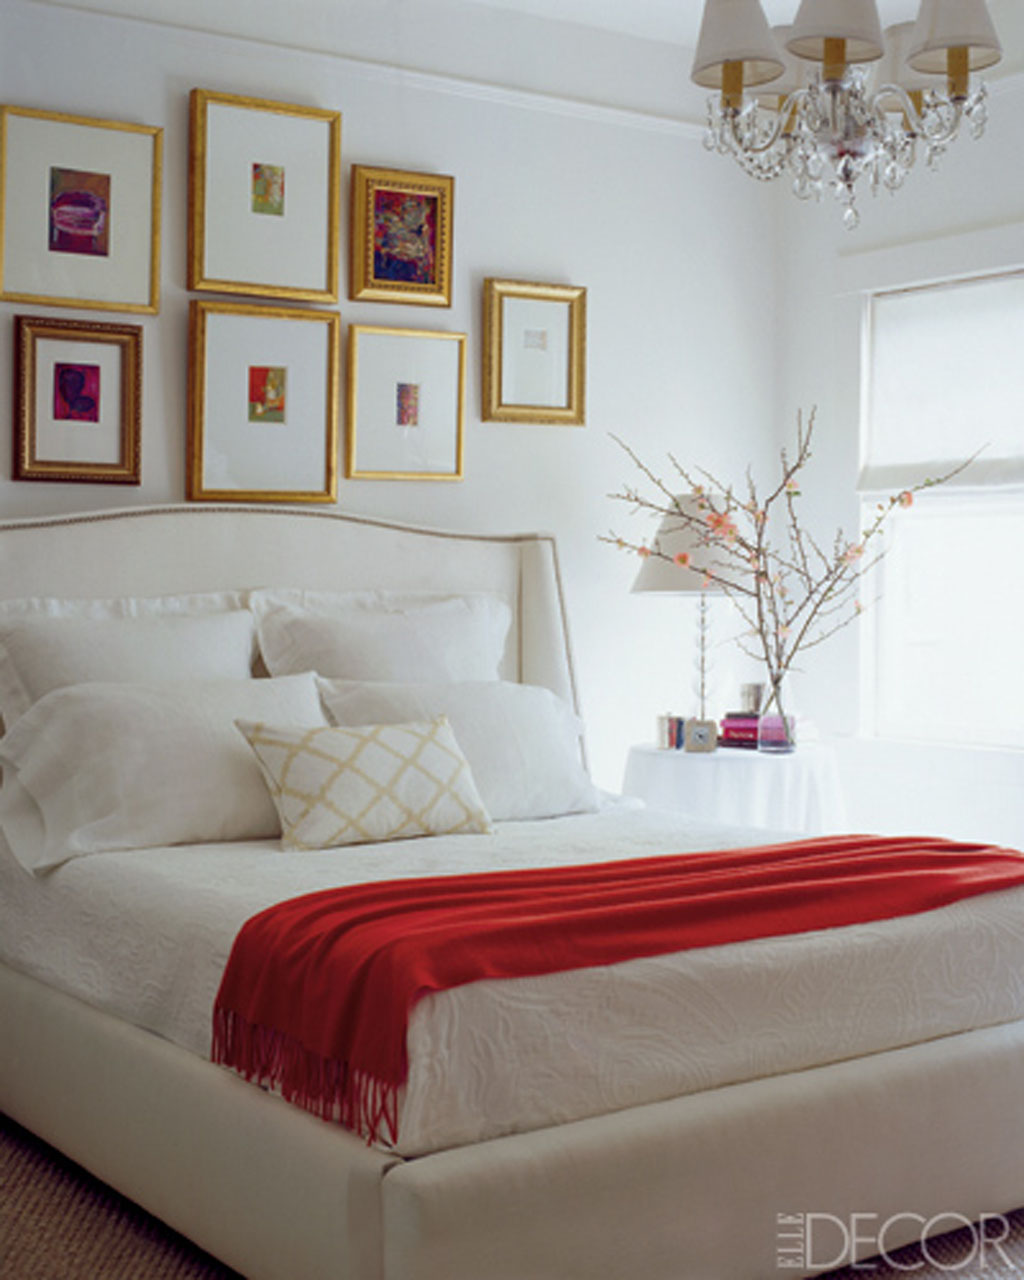 White Lounge Decor Ideas: 41 White Bedroom Interior Design Ideas & Pictures